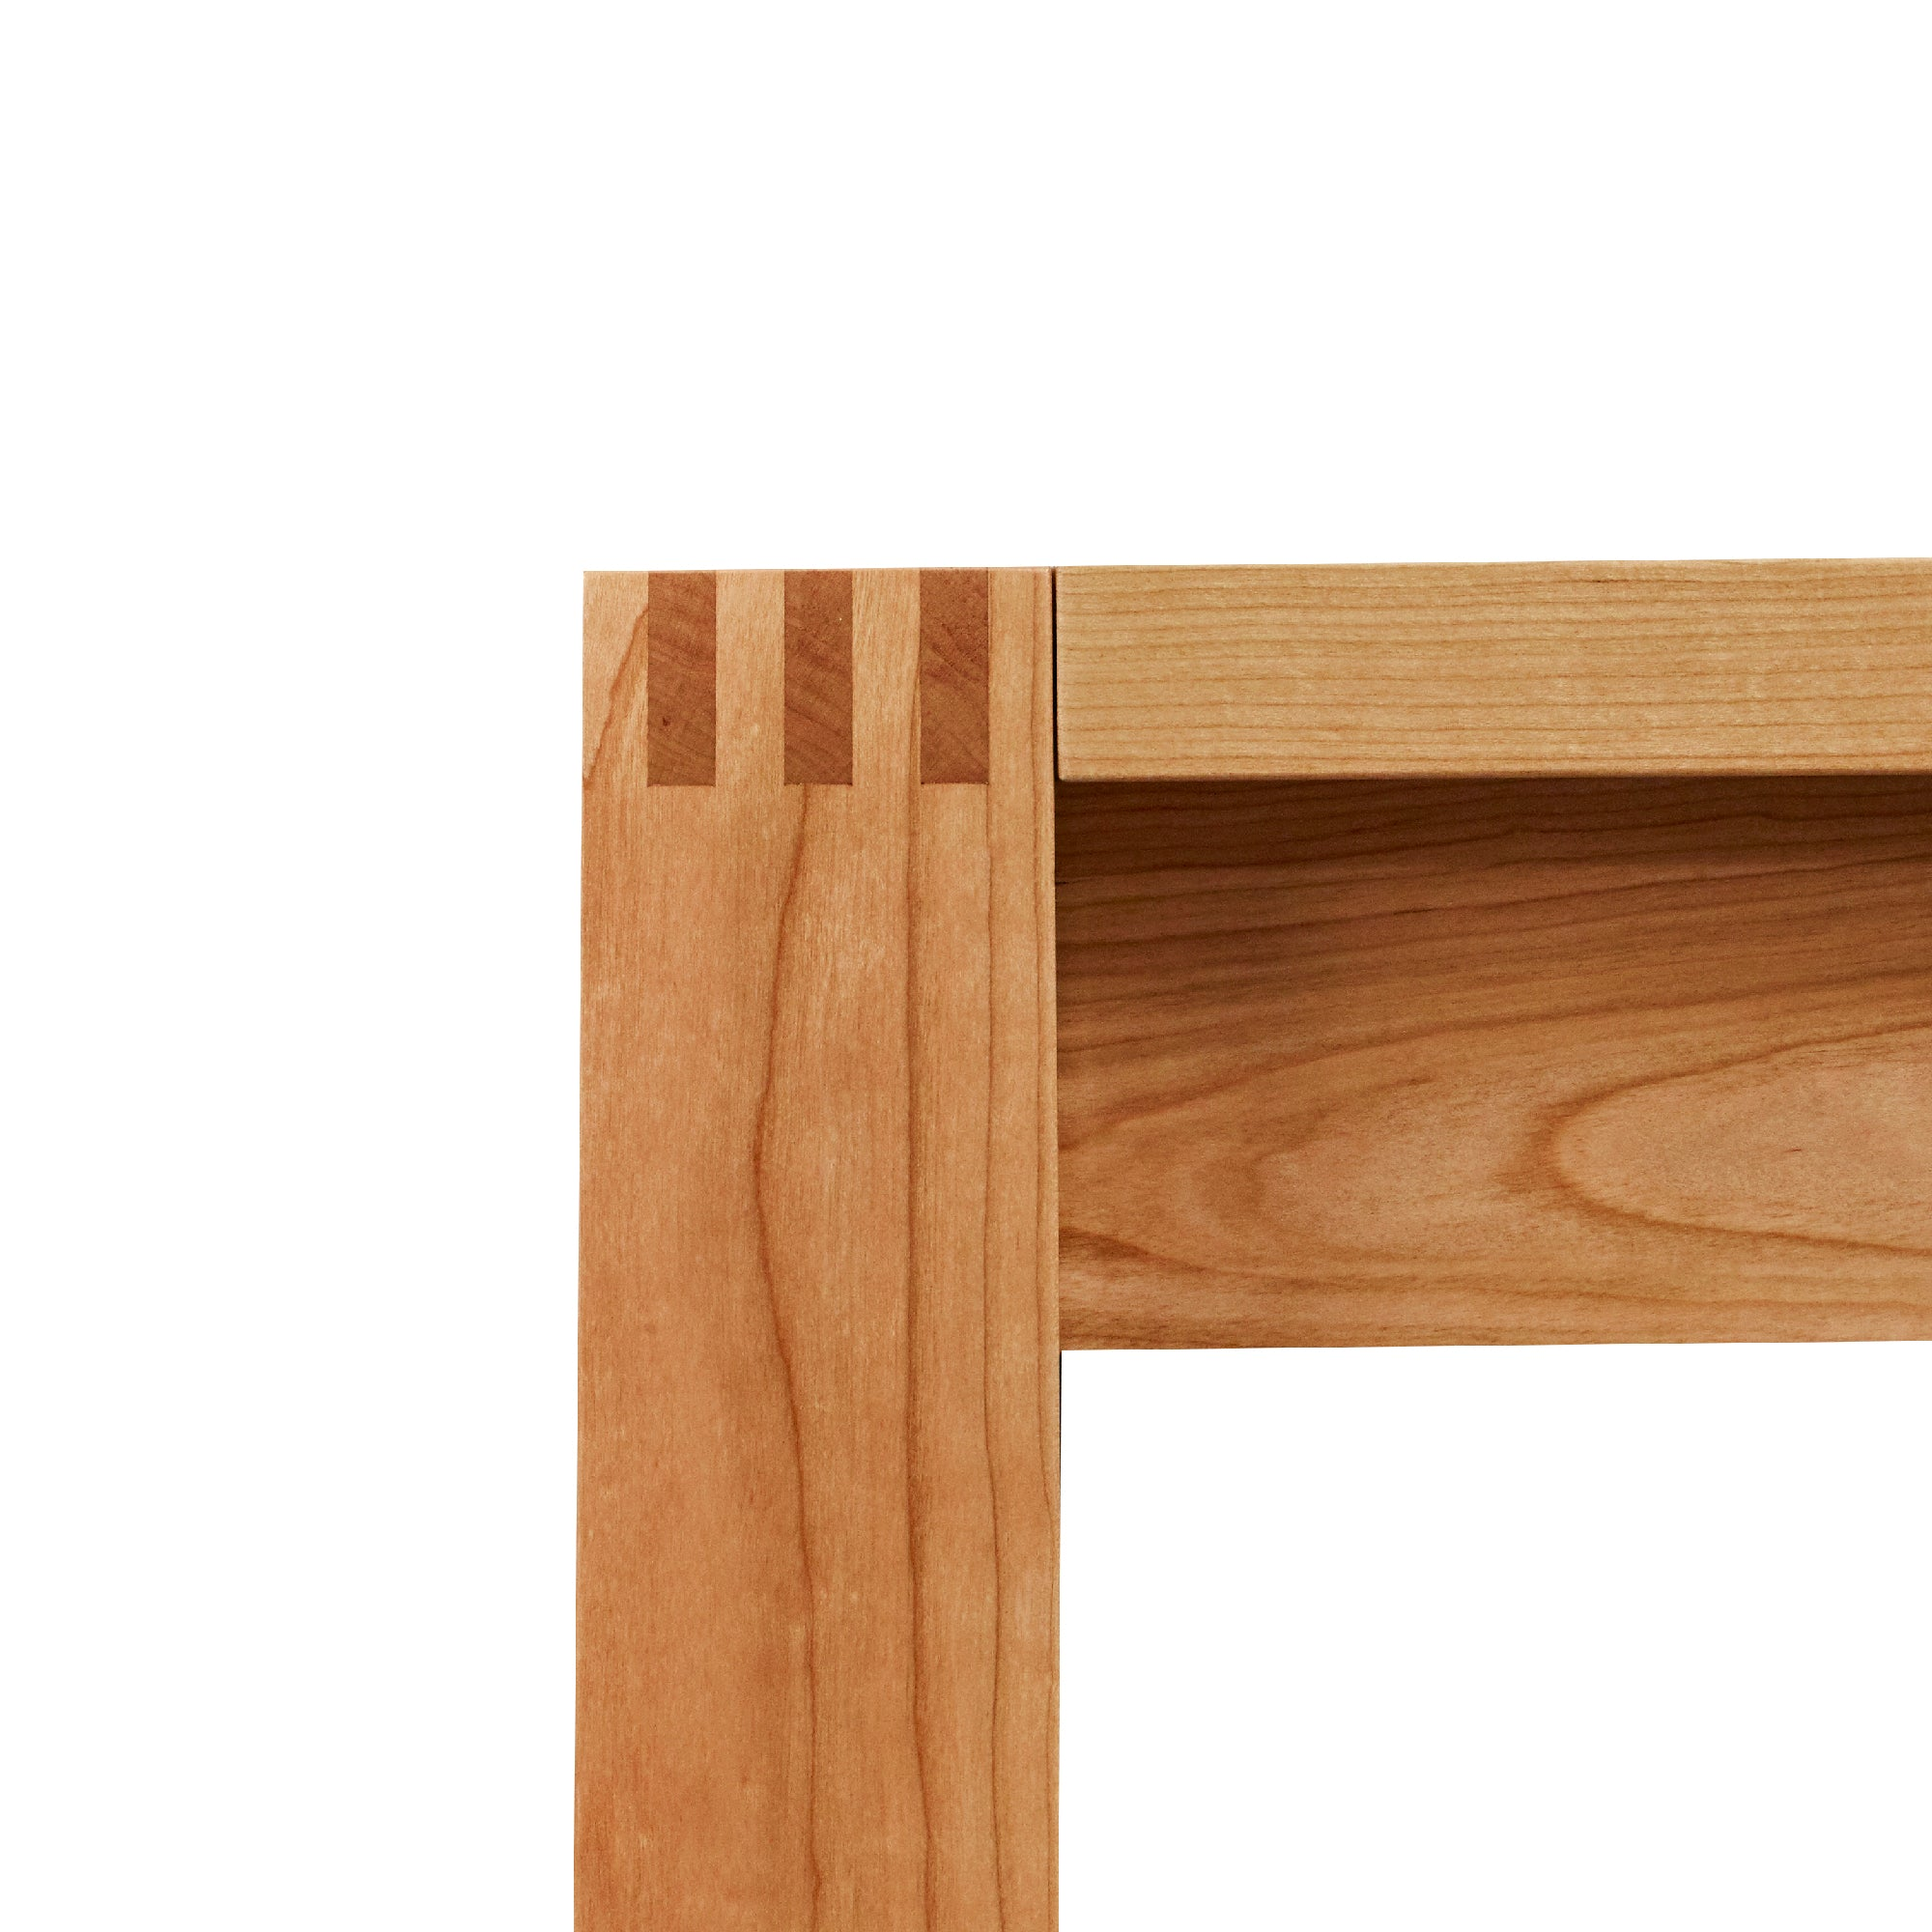 Finger joinery in solid cherry on the Harbor Dining Table